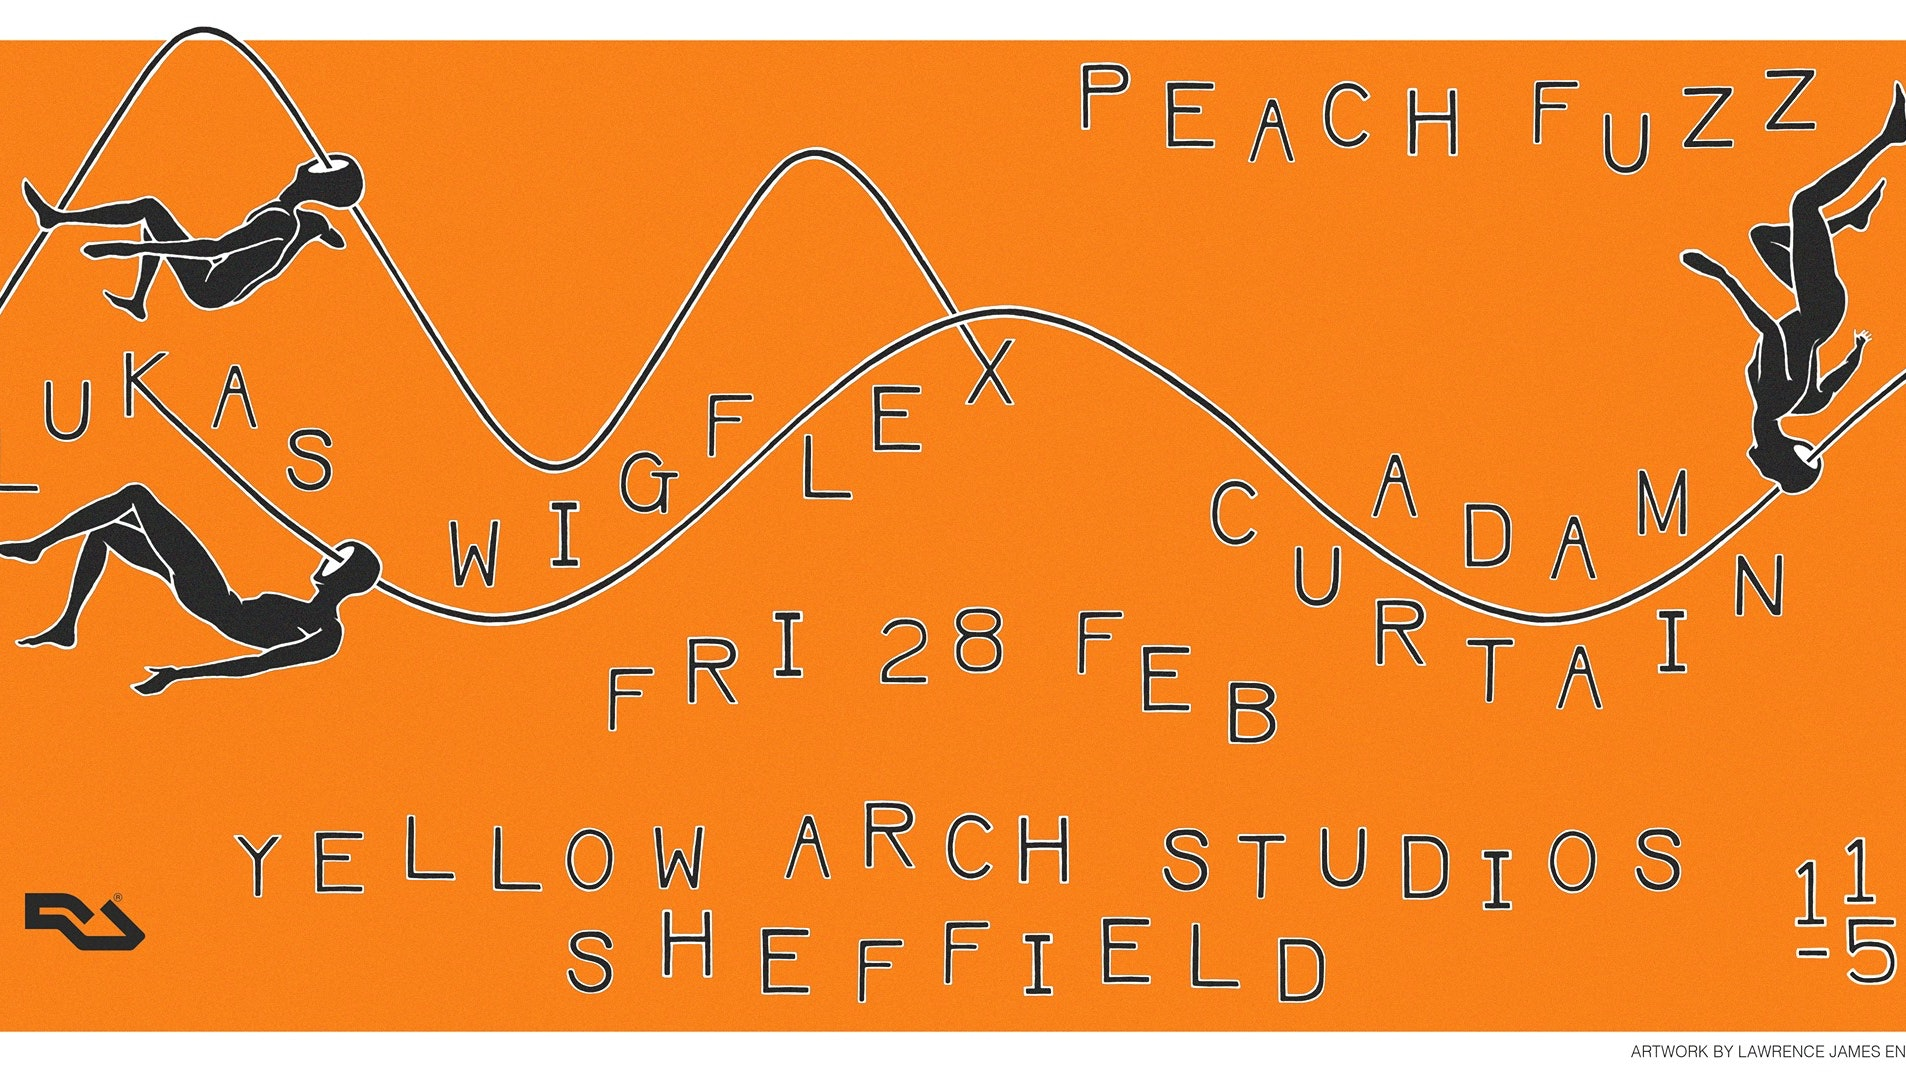 Peach Fuzz Sheffield w/ Adam Curtain, Lukas Wigflex